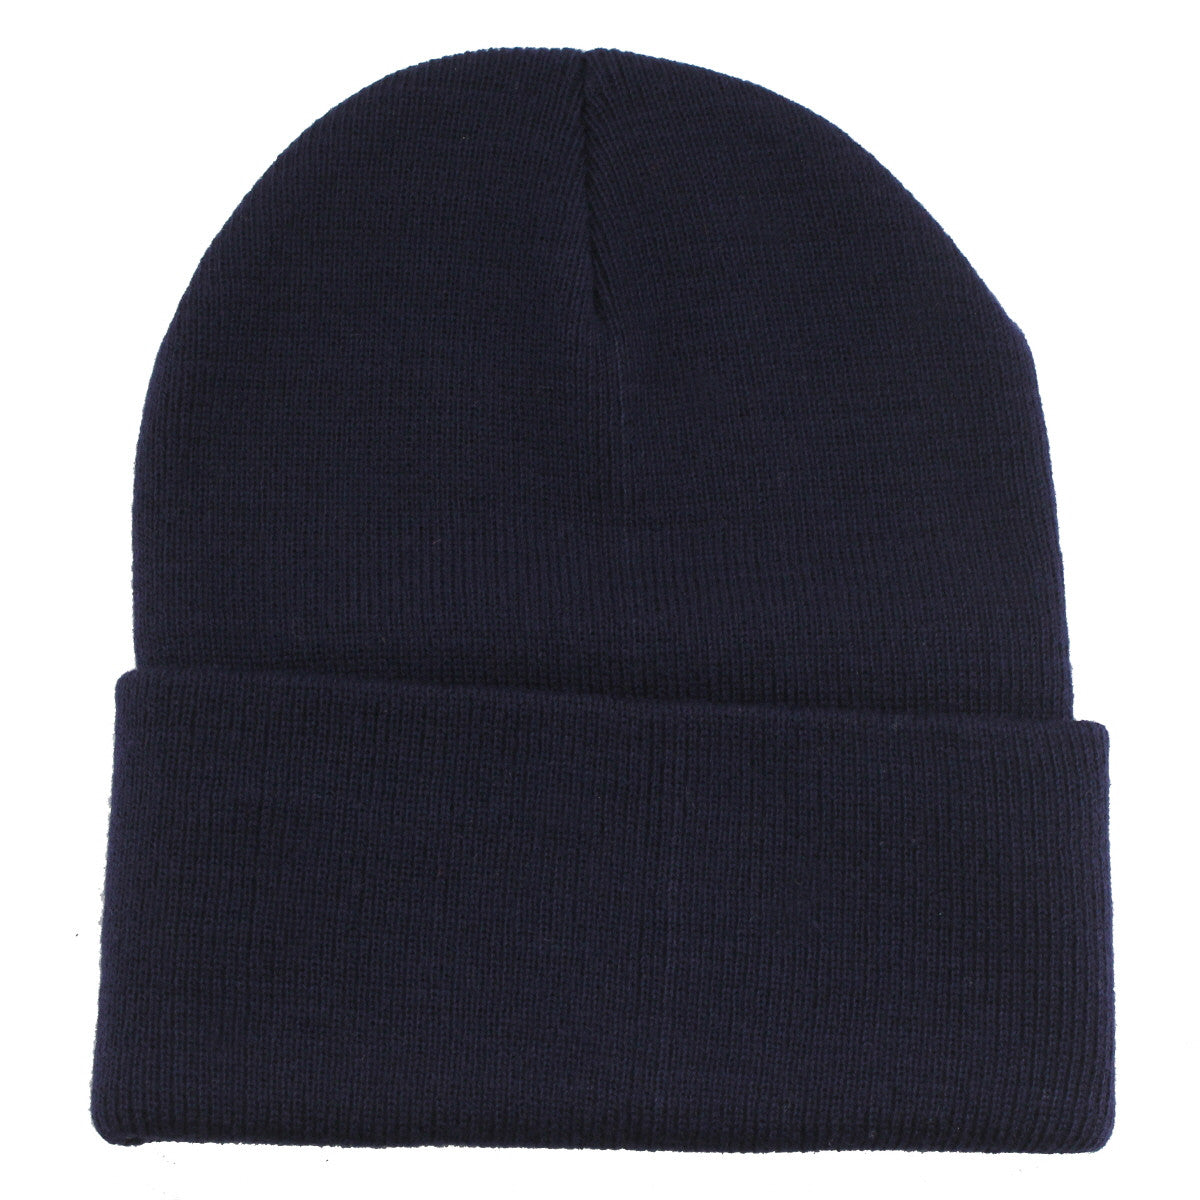 Unisex Knitted Navy Beanie Hat-One Size